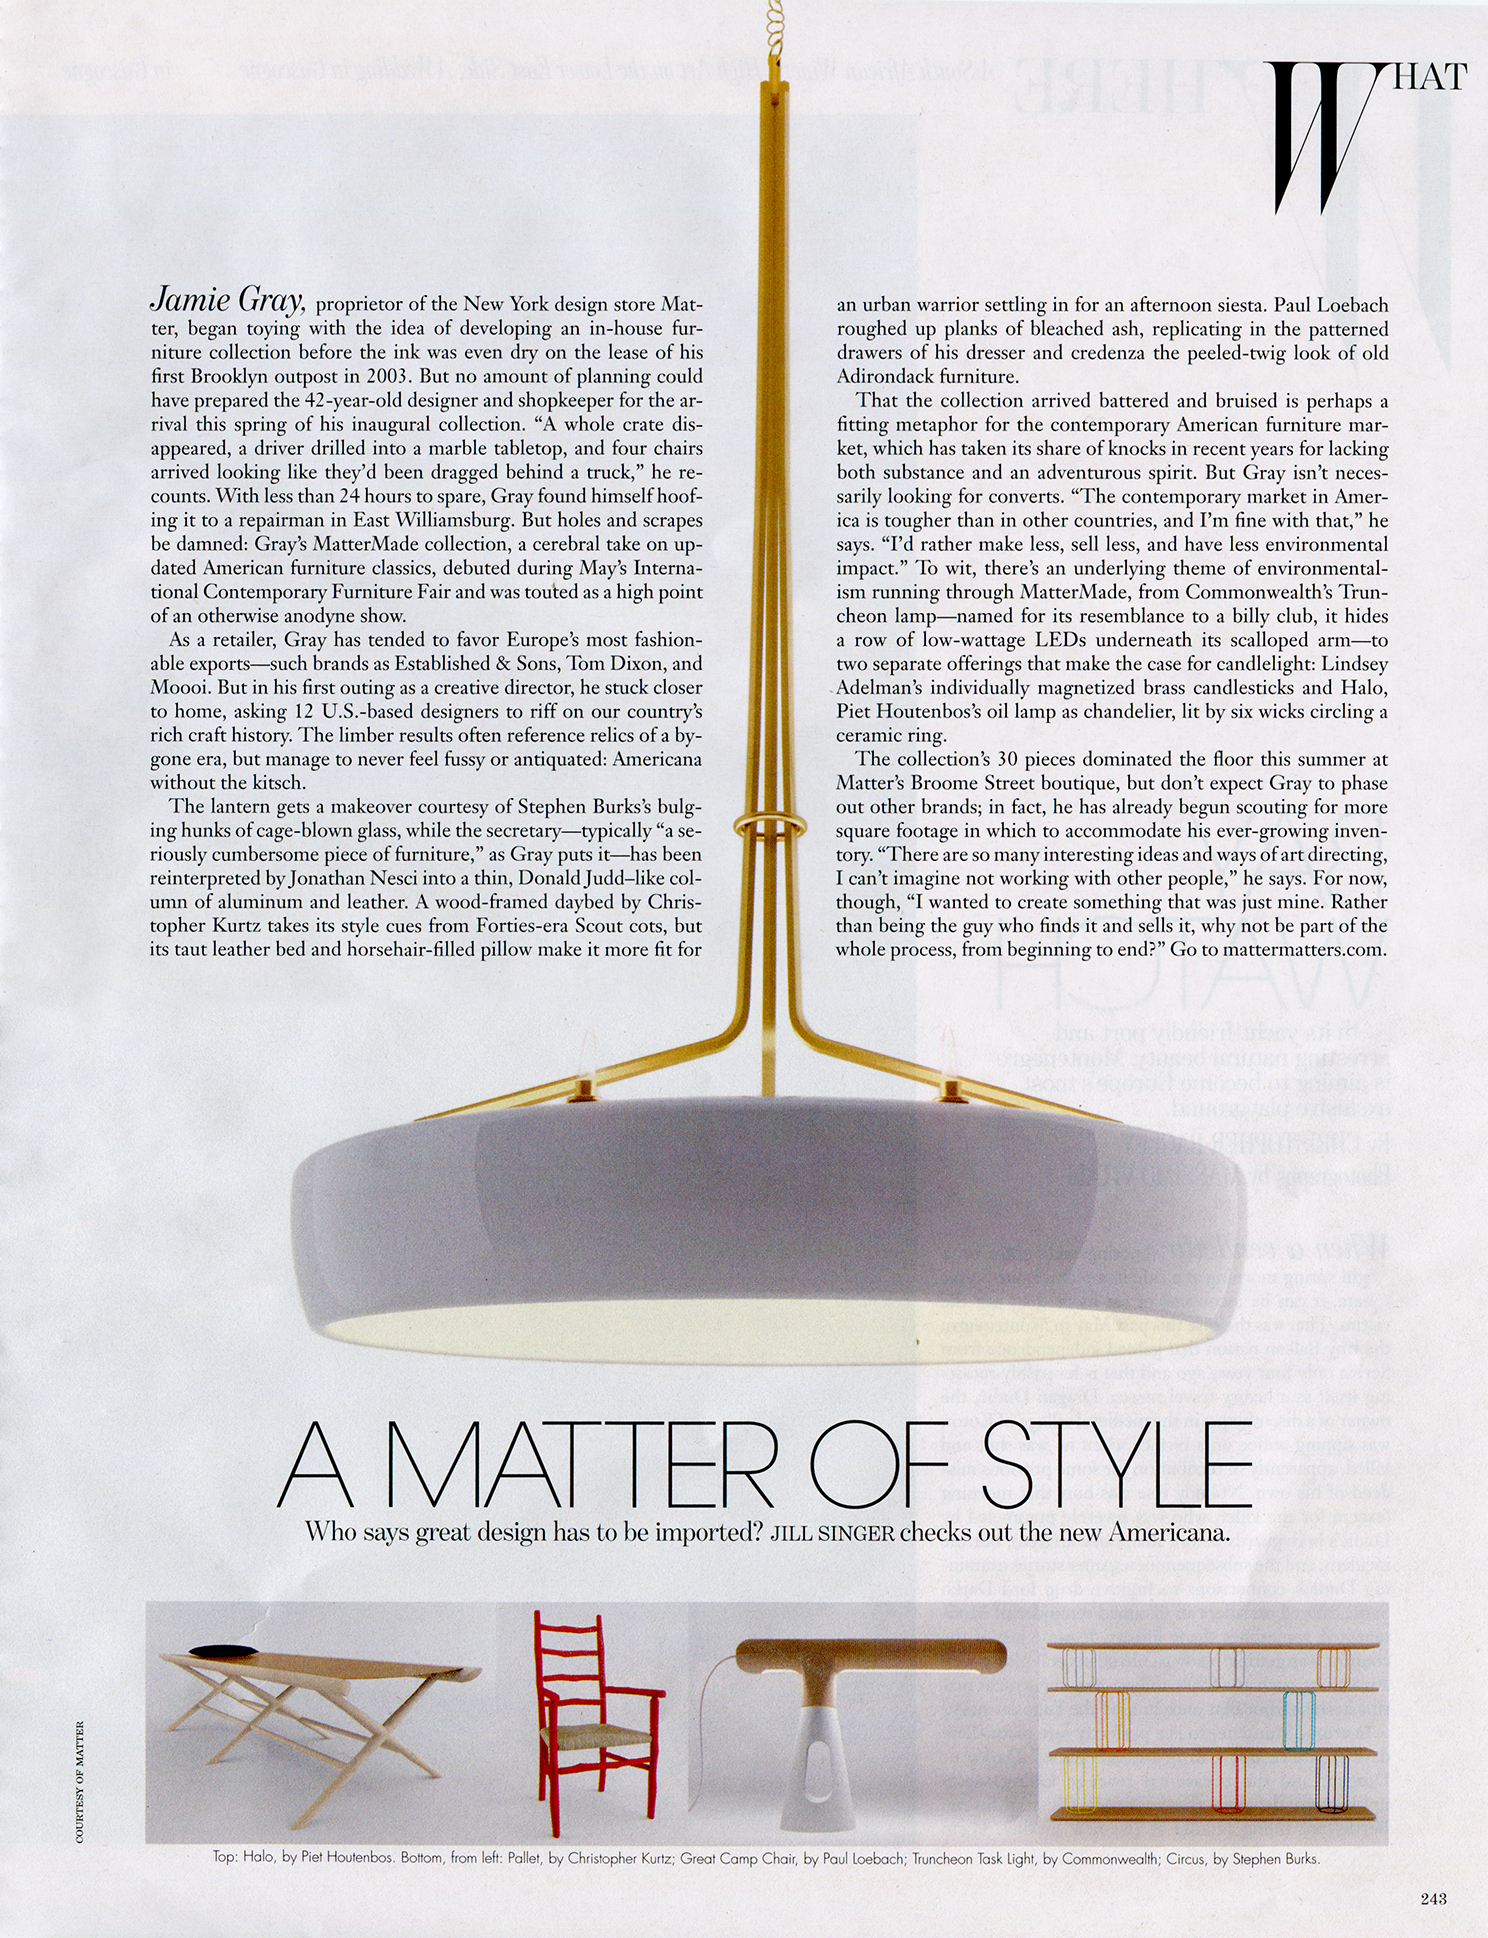 Halo Chandelier featured in W Magazine's September Issue.